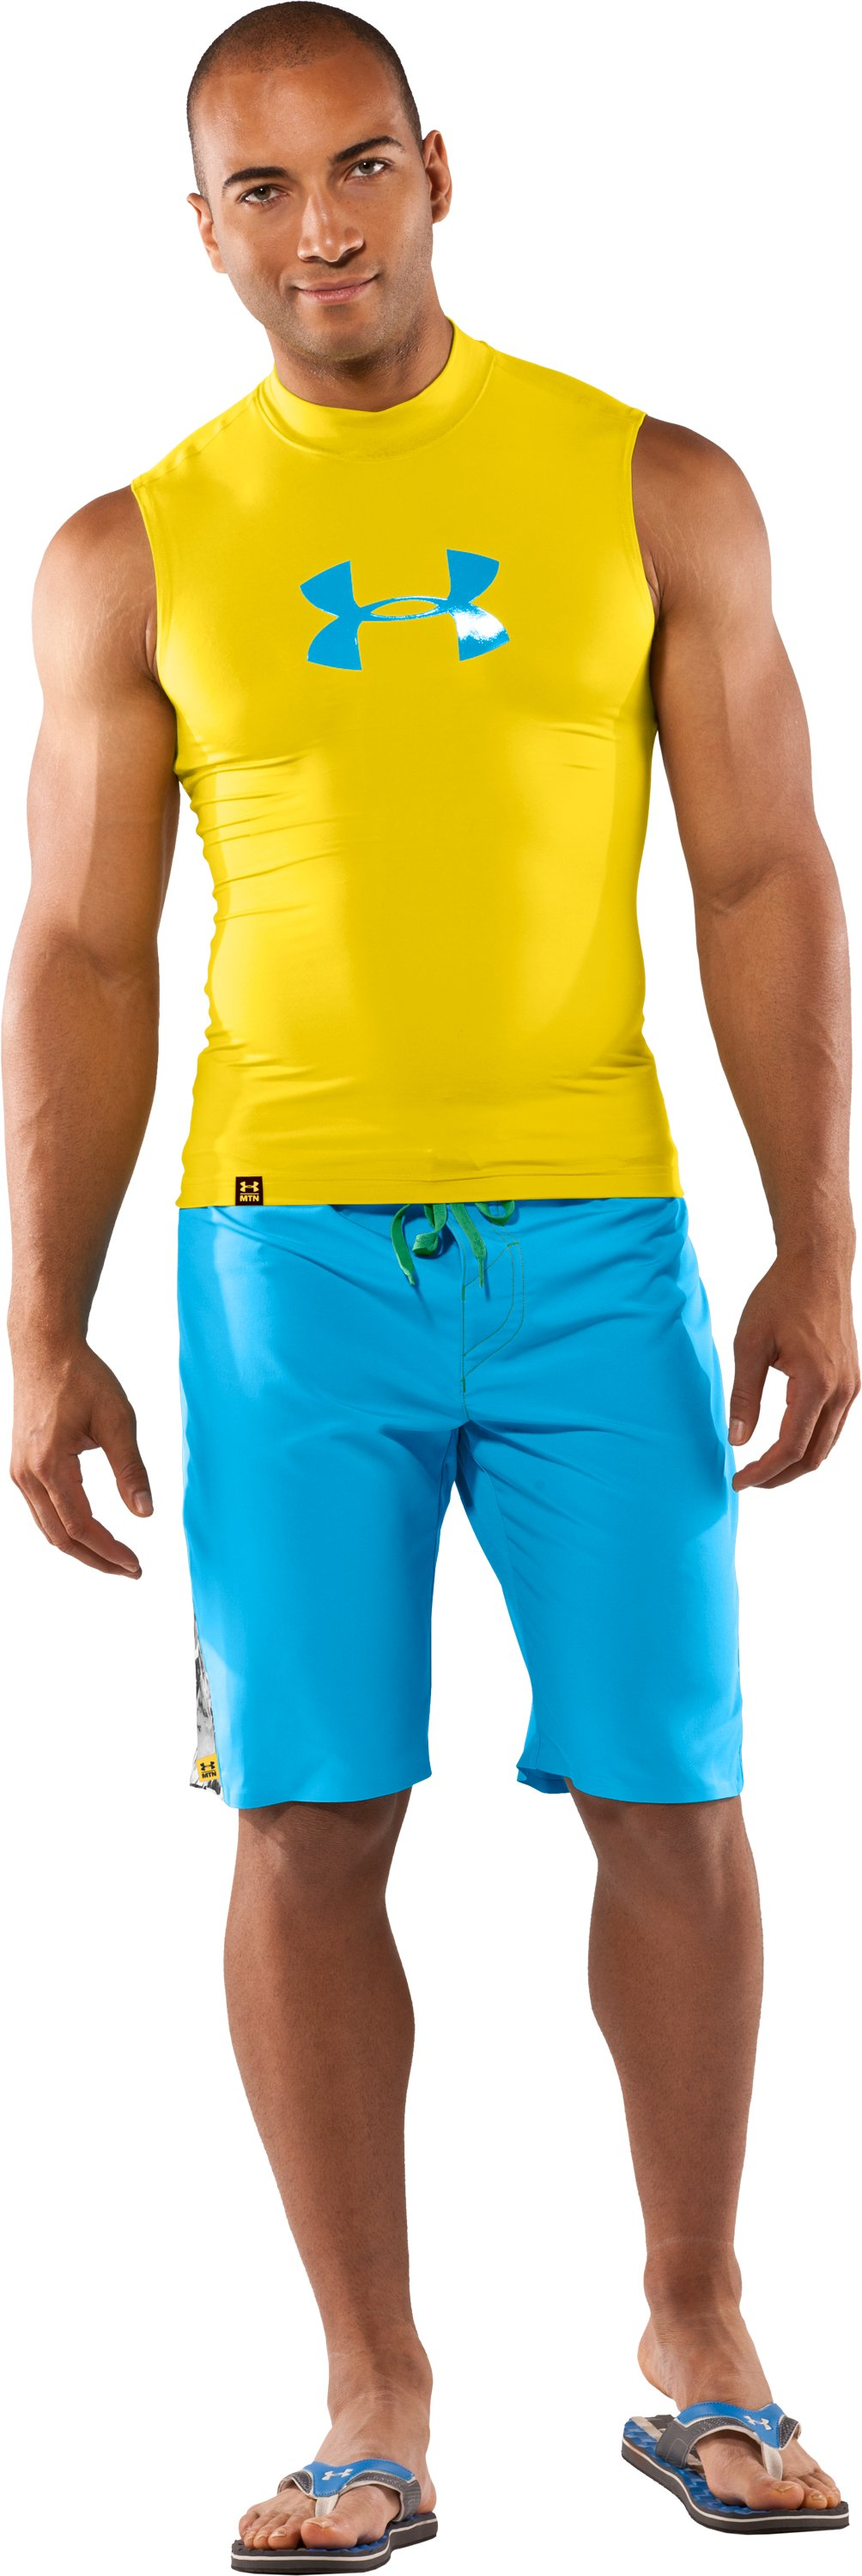 Men's Proaid Sleeveless Rash Guard, Lemonade, zoomed image